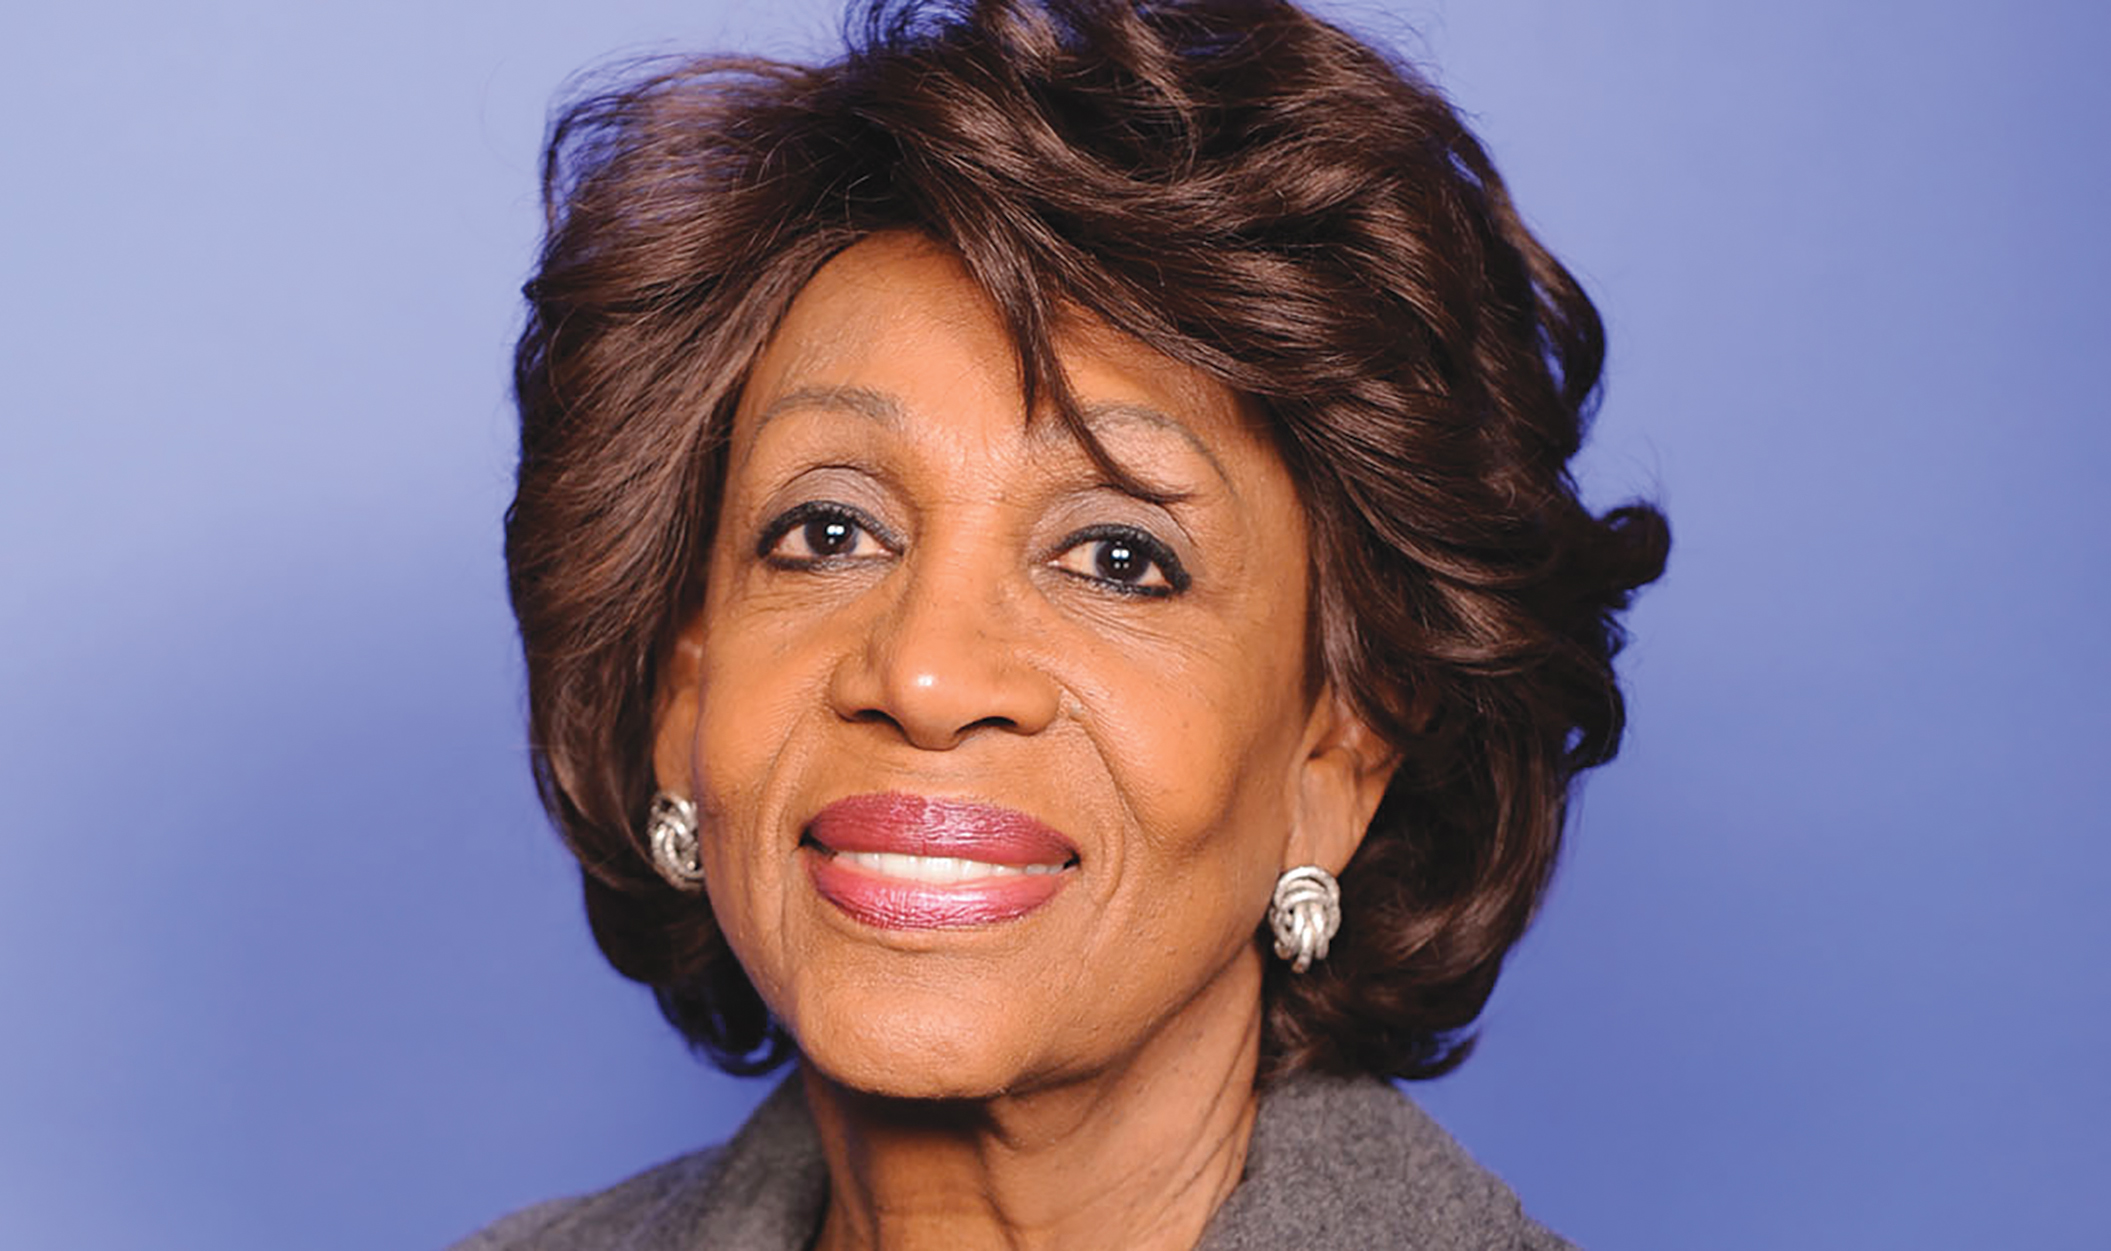 Congresswoman Maxine Waters (D-CA), Chairwoman of the House Financial Services Committee